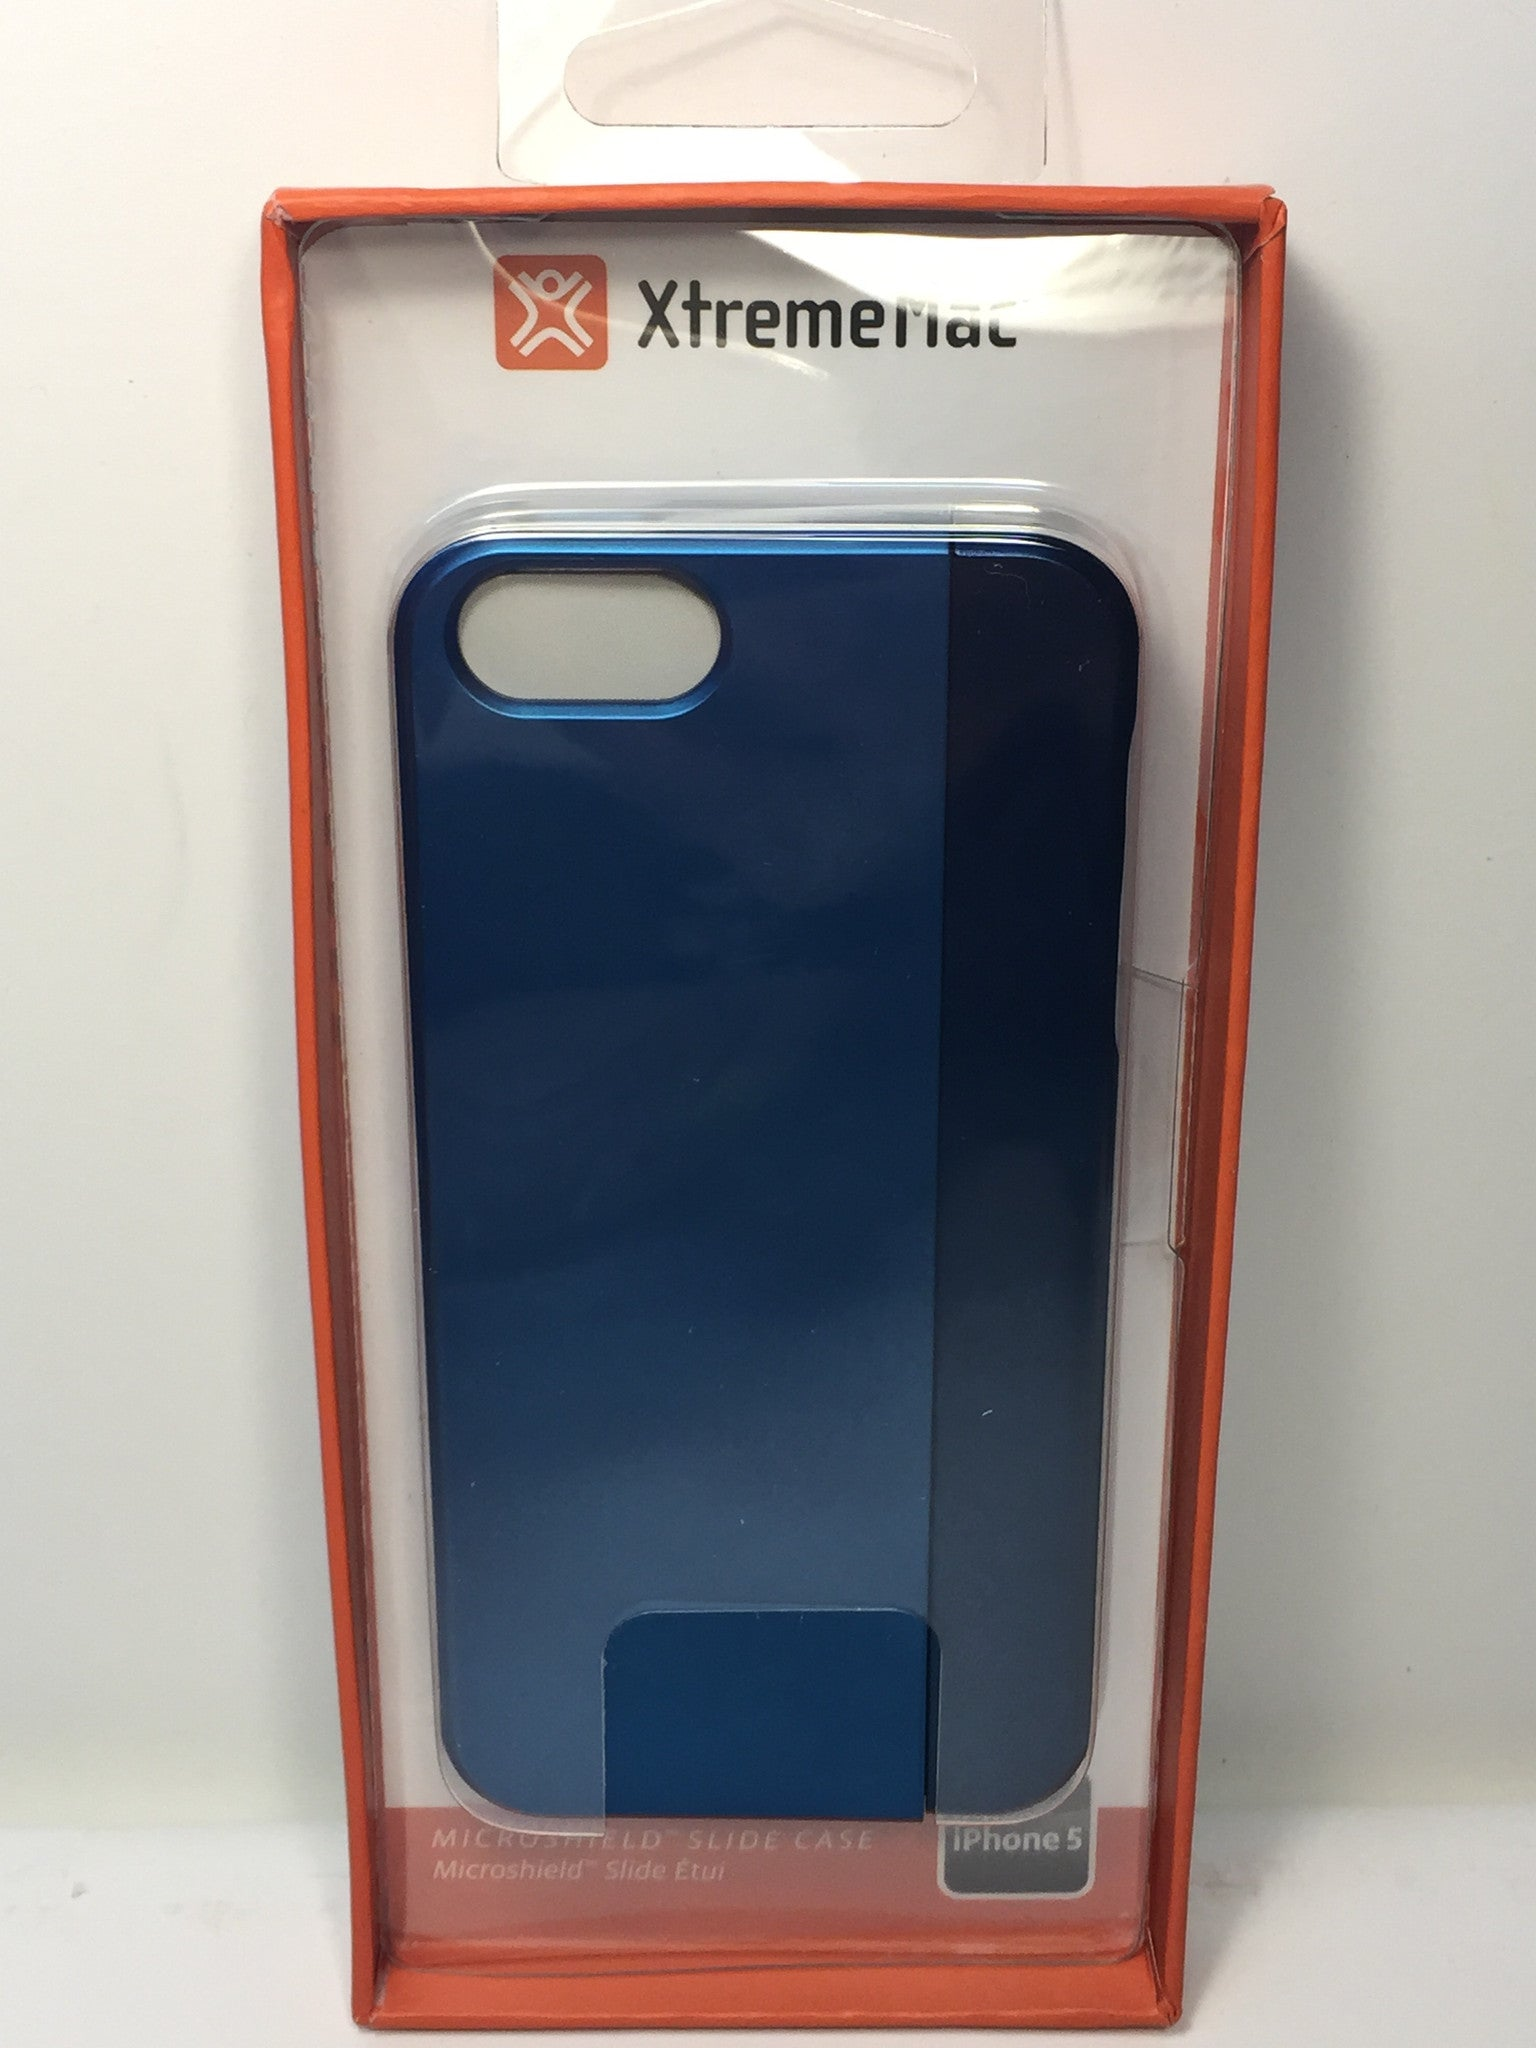 XtremeMac MicroShield Slide  Case For iPhone 5/5s - Monaco Blue/Metallic - IPP-MSS5-23 - LiquidationOutlet.ca